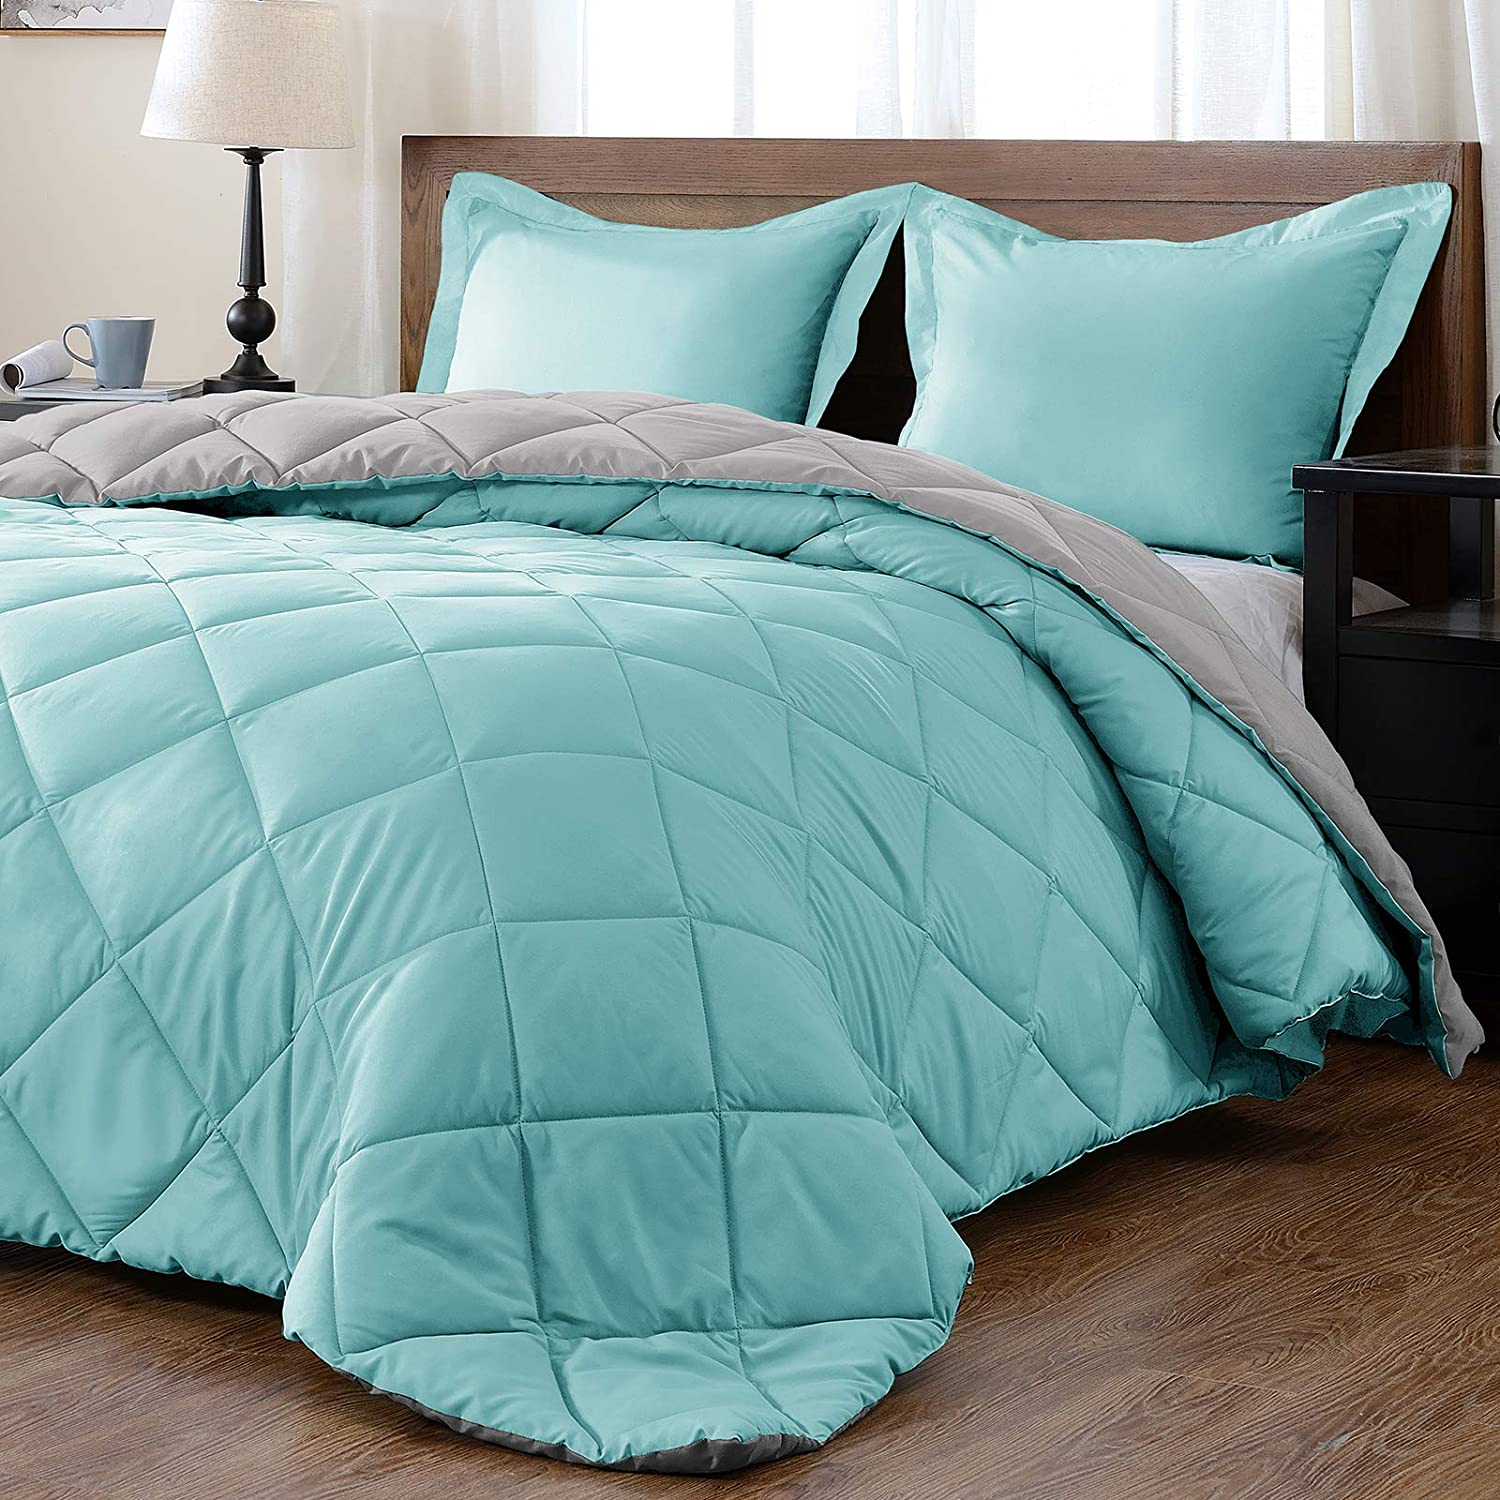 downluxe Lightweight Solid Comforter Set Sh King Pillow with 2 Year-end Spring new work one after another gift